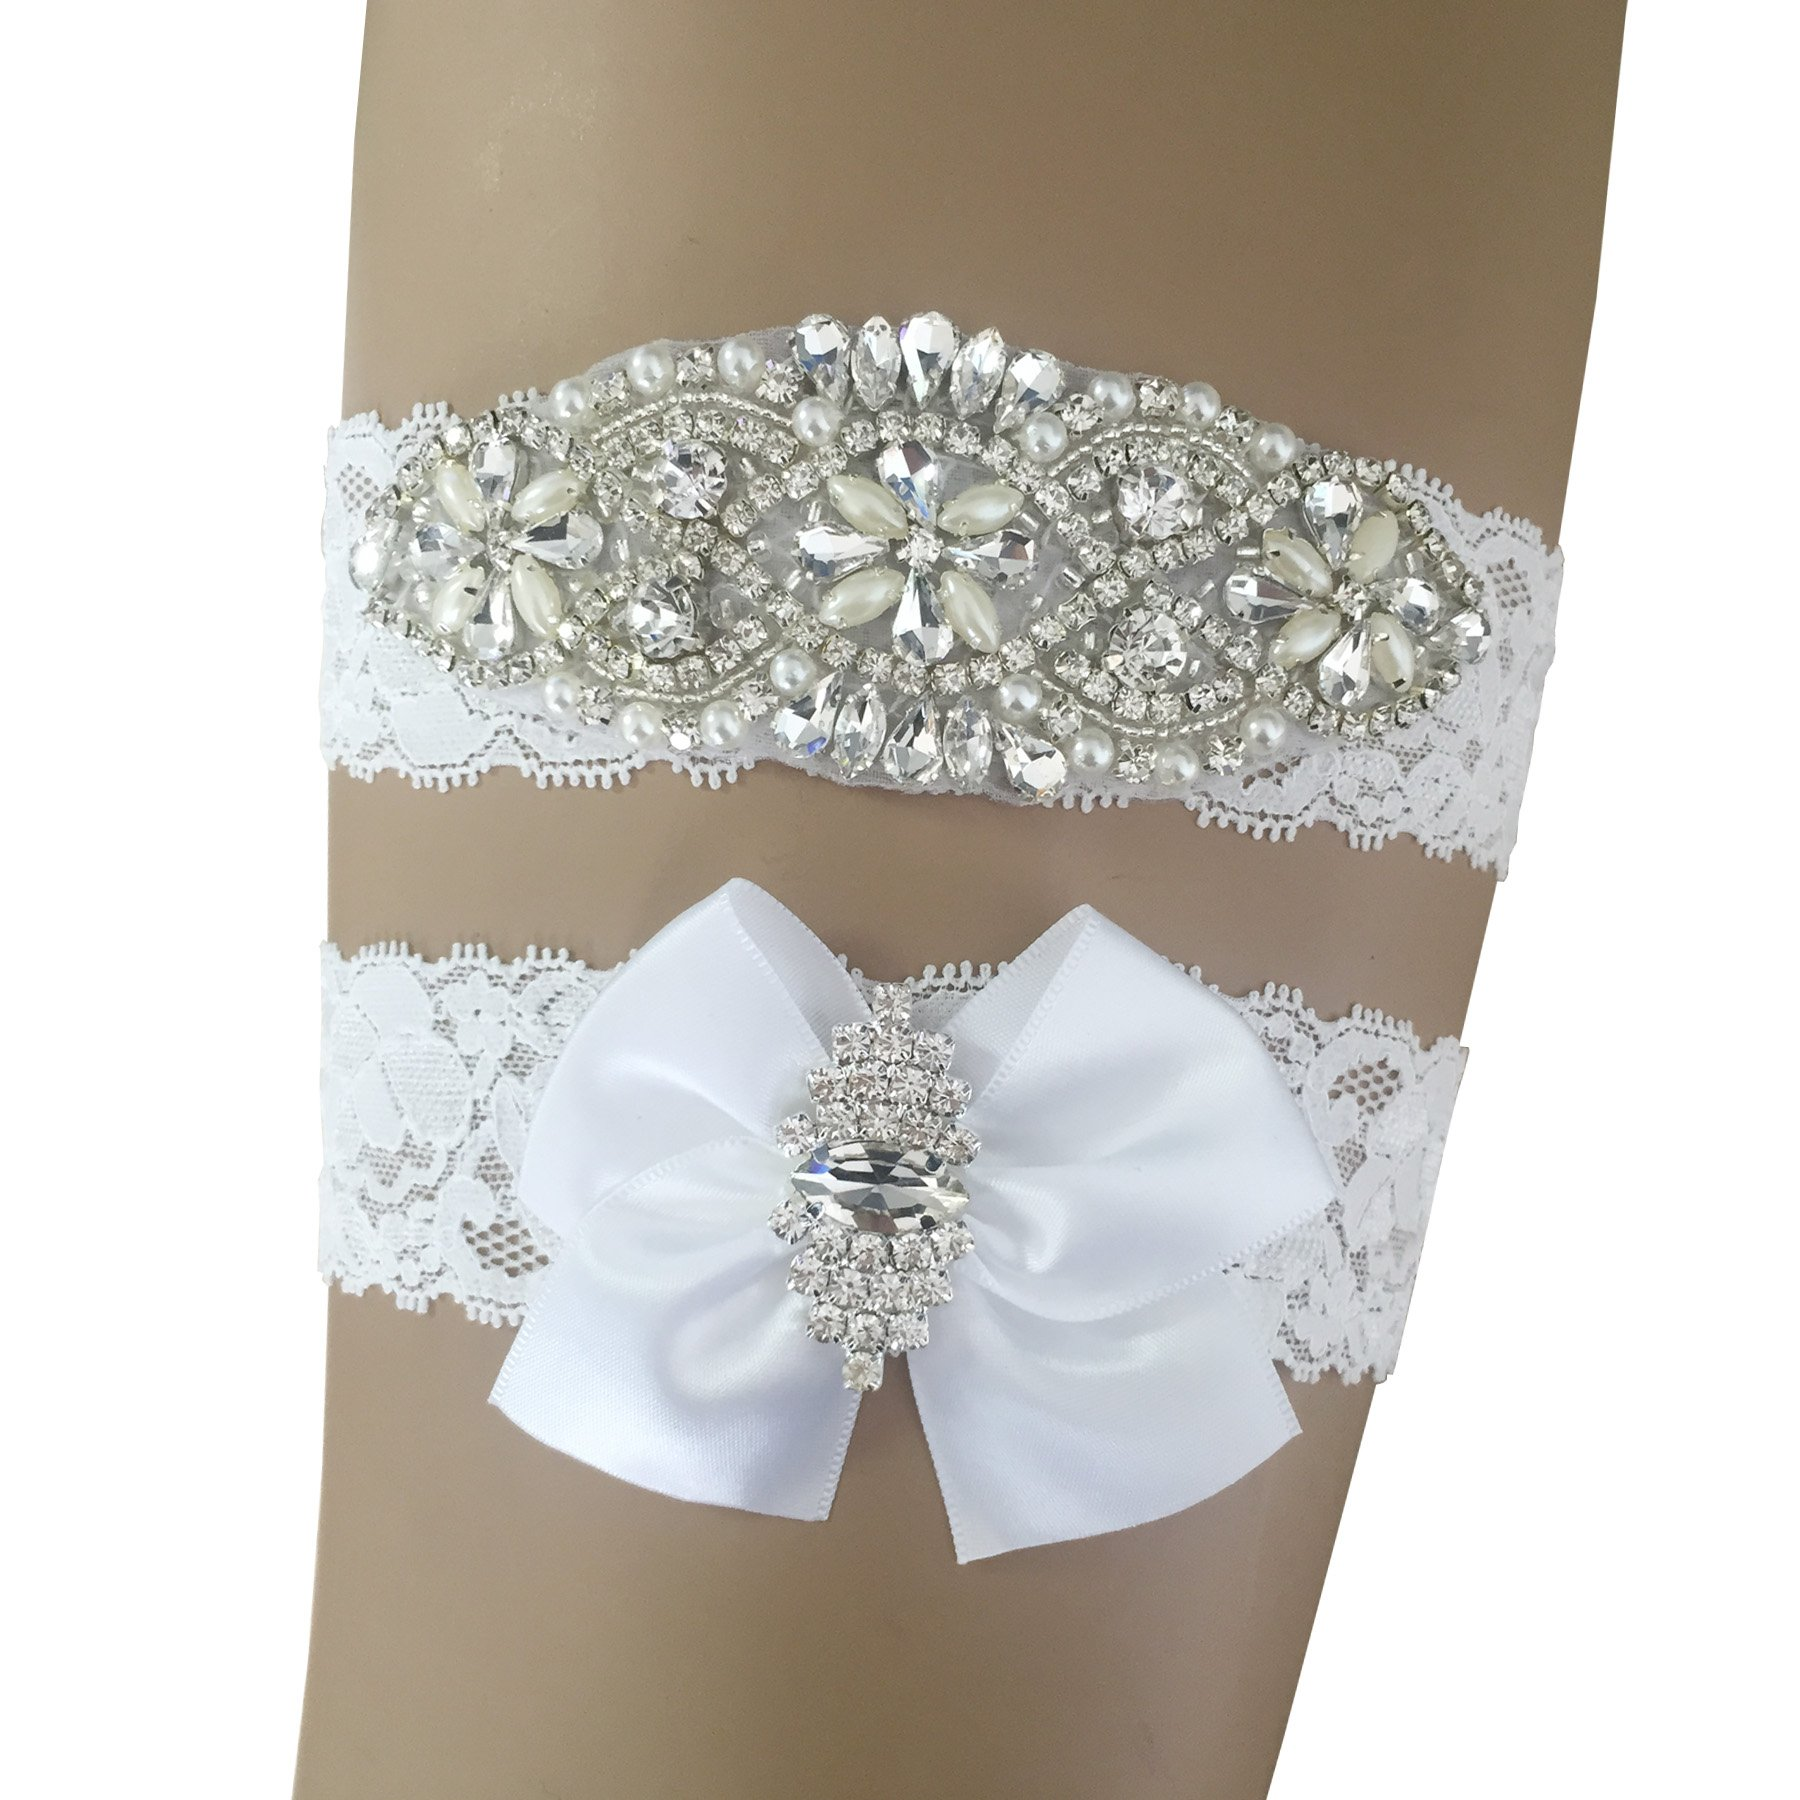 Kirmoo Vintage Bridal Garter Set Lace Wedding Garters For Bride White with Bow Rhinestones (M(14''~18''))